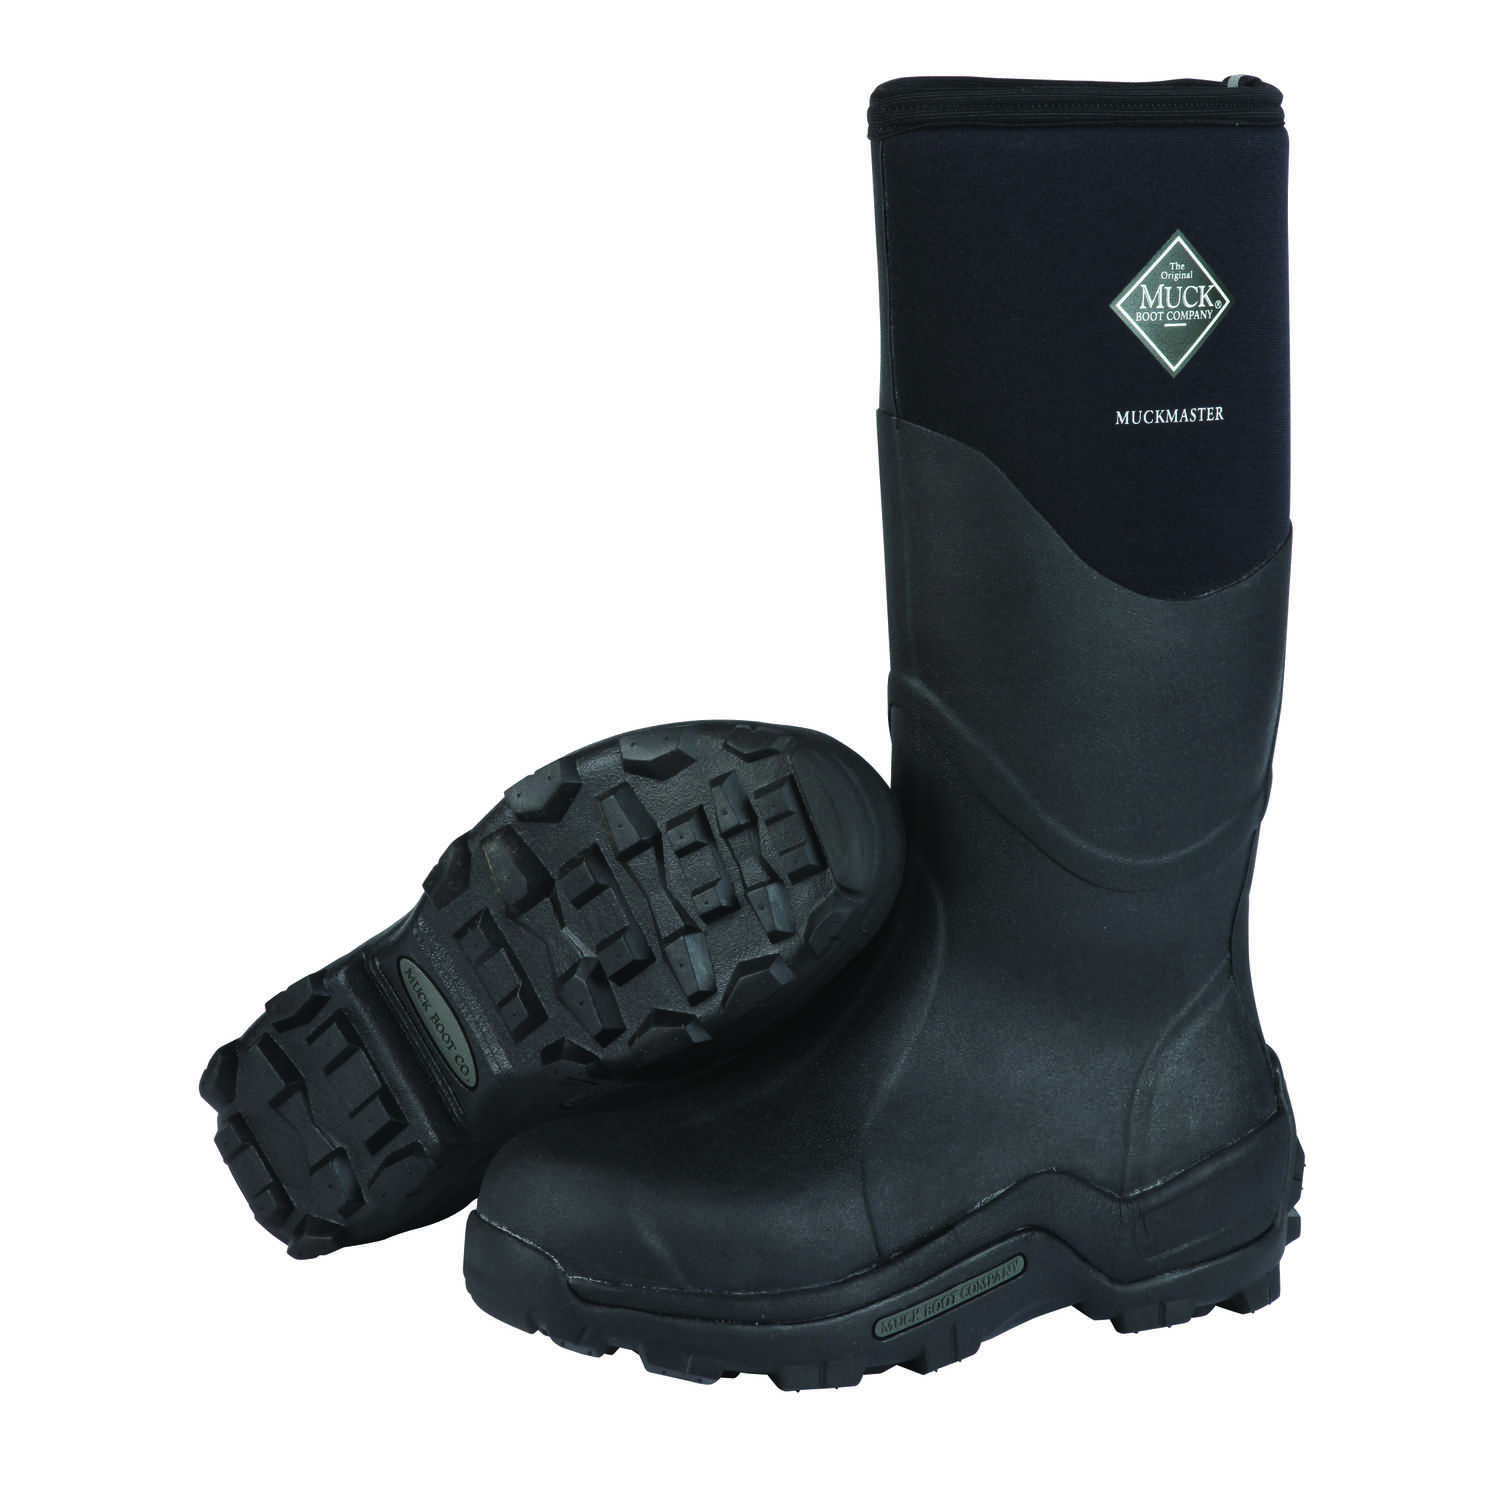 The Original Muck Boot Company  Muckmaster  Men's  Boots  8 US  Black